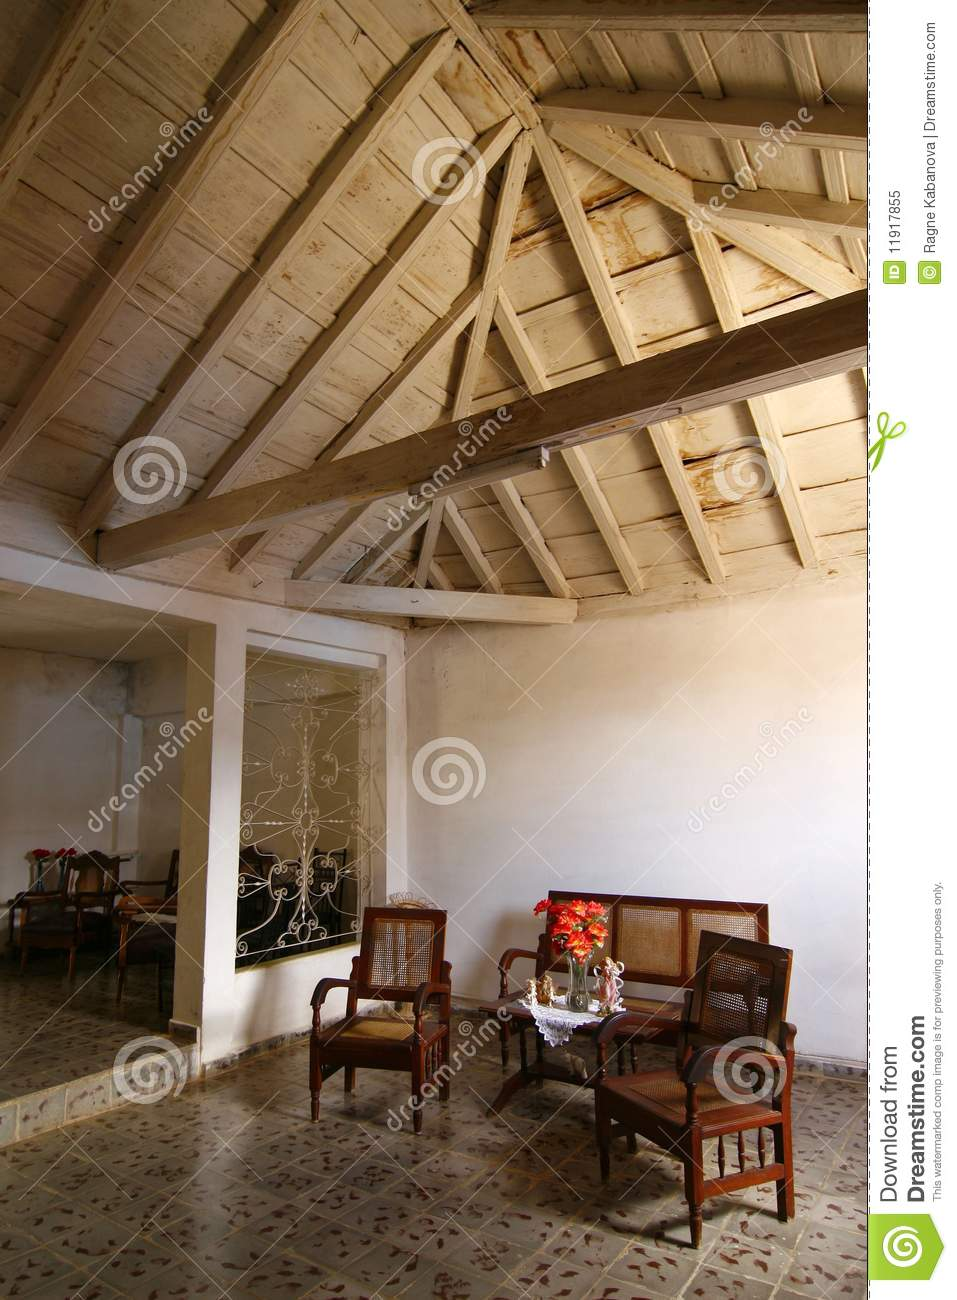 Living room trinidad cuba royalty free stock photo image 11917855 for Living room furniture trinidad